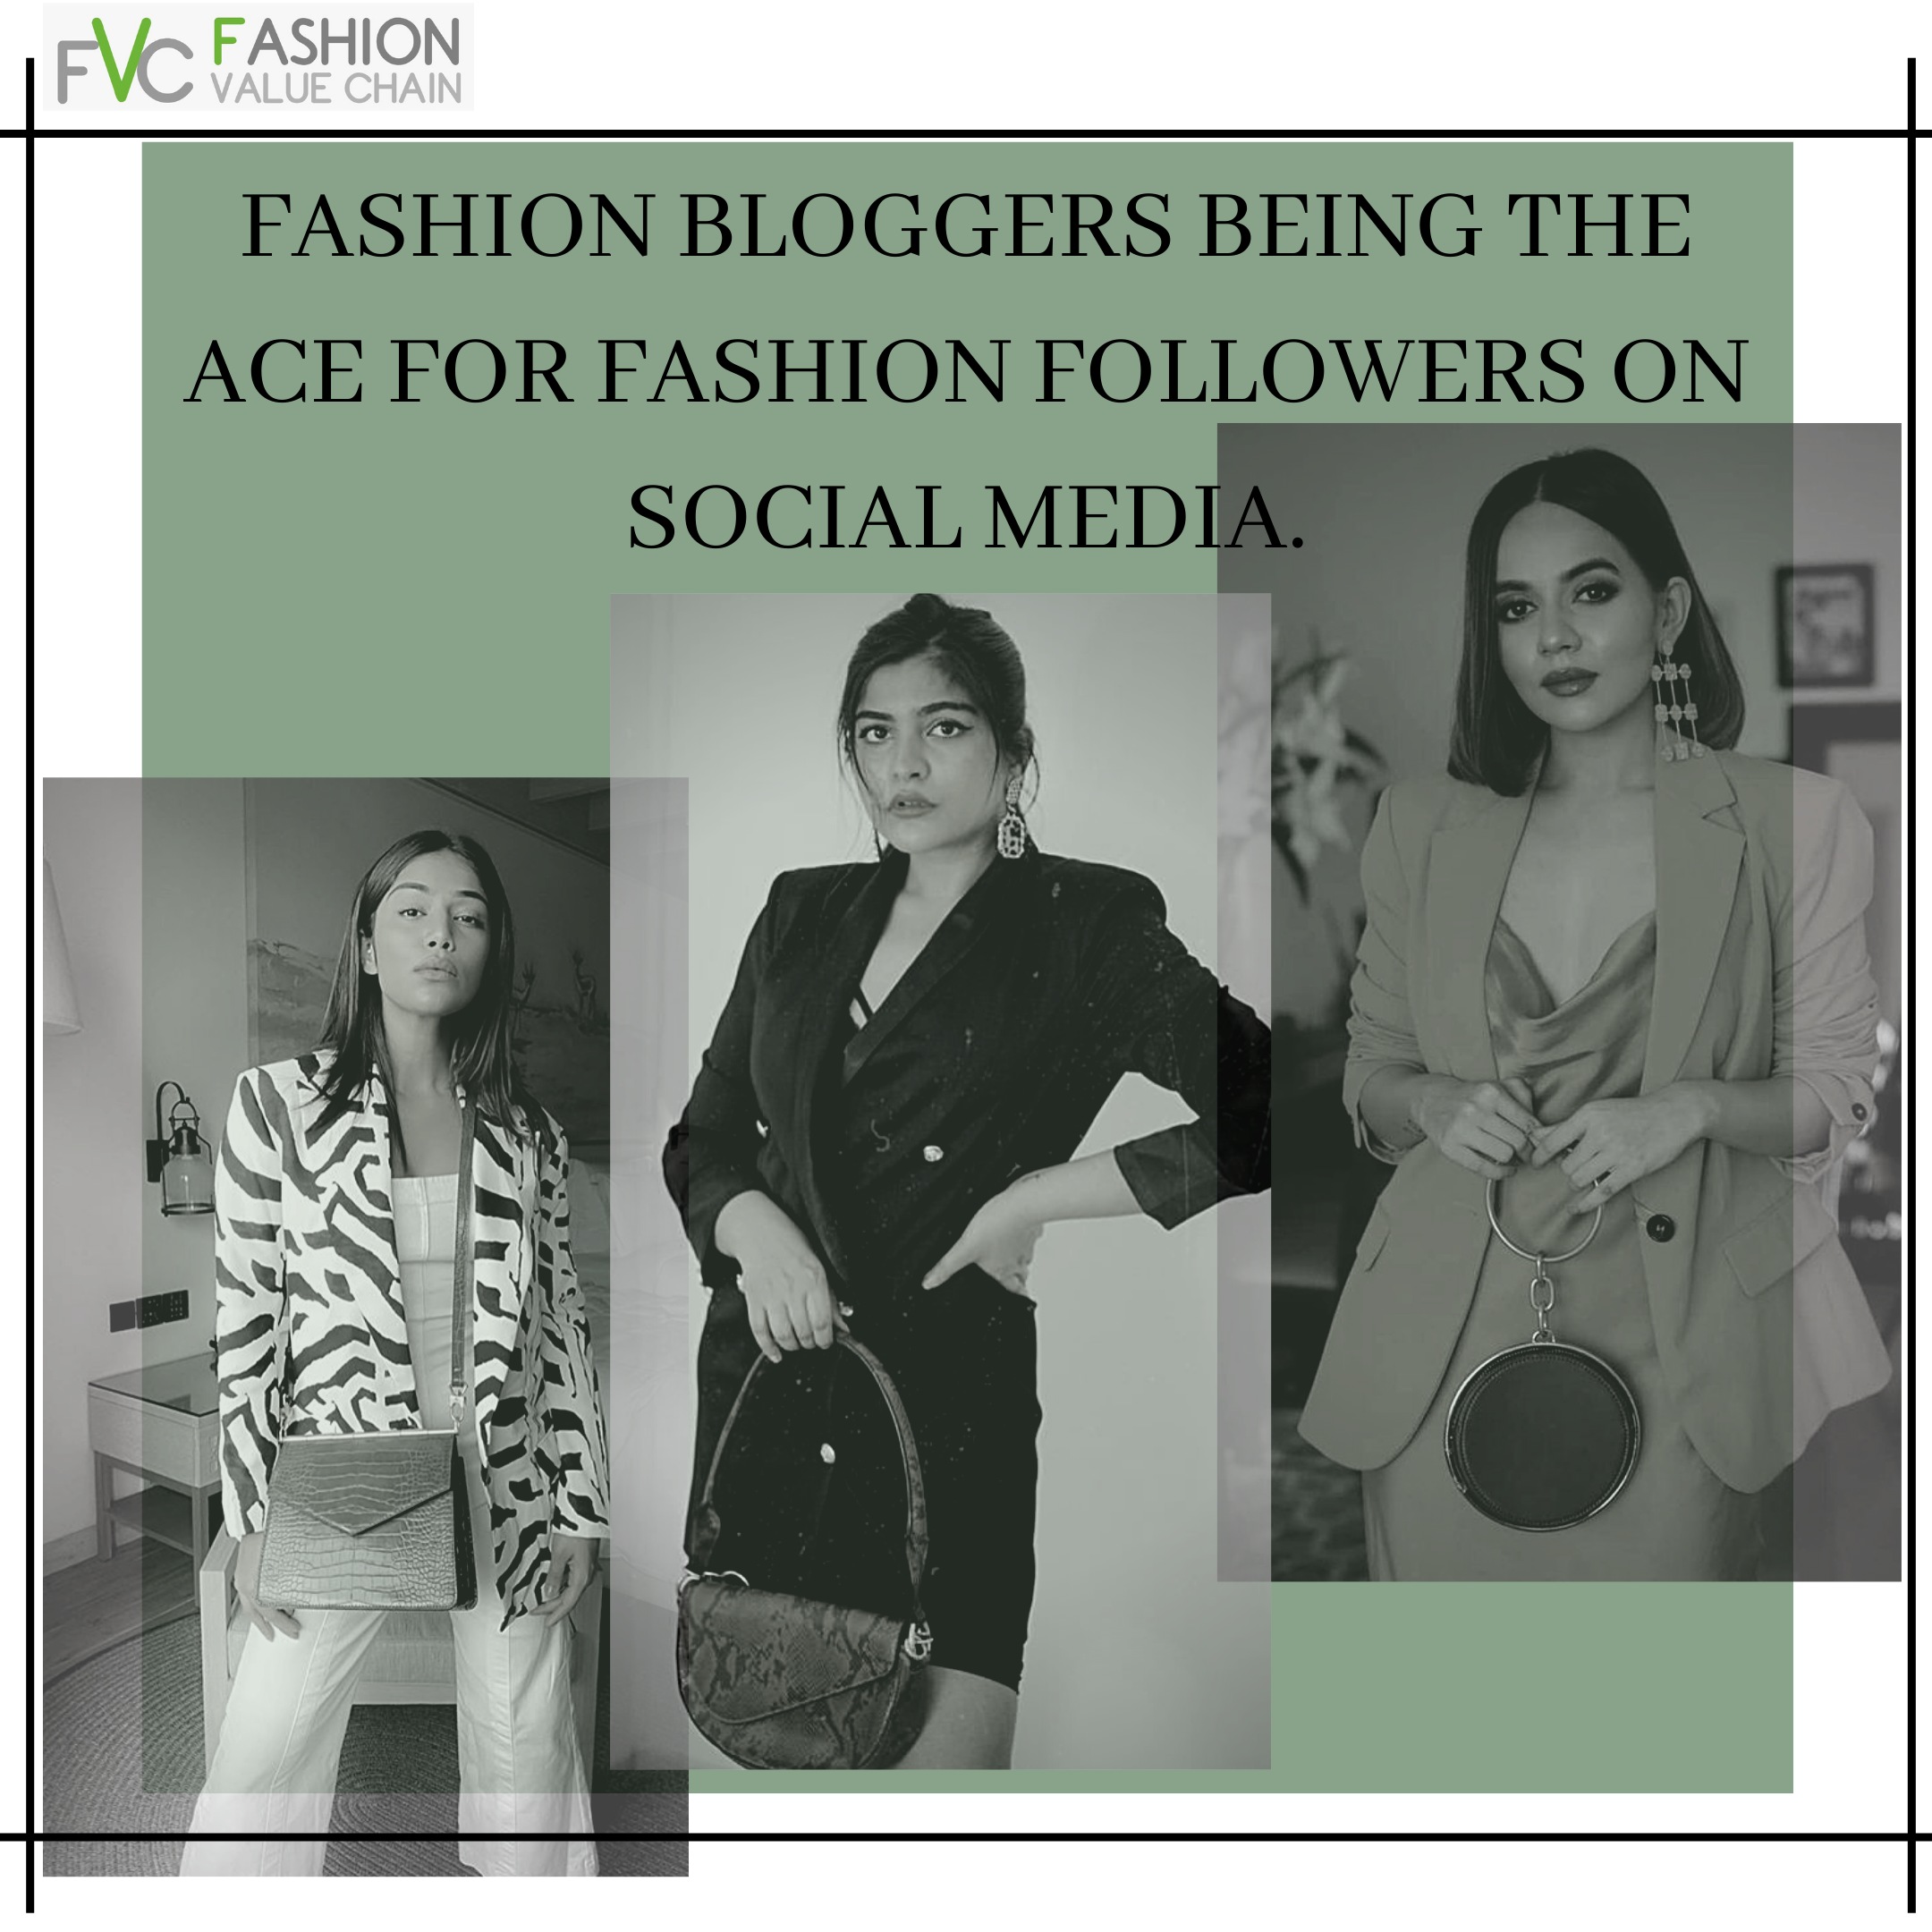 Fashion Bloggers being the Ace for Fashion Followers on Social Media